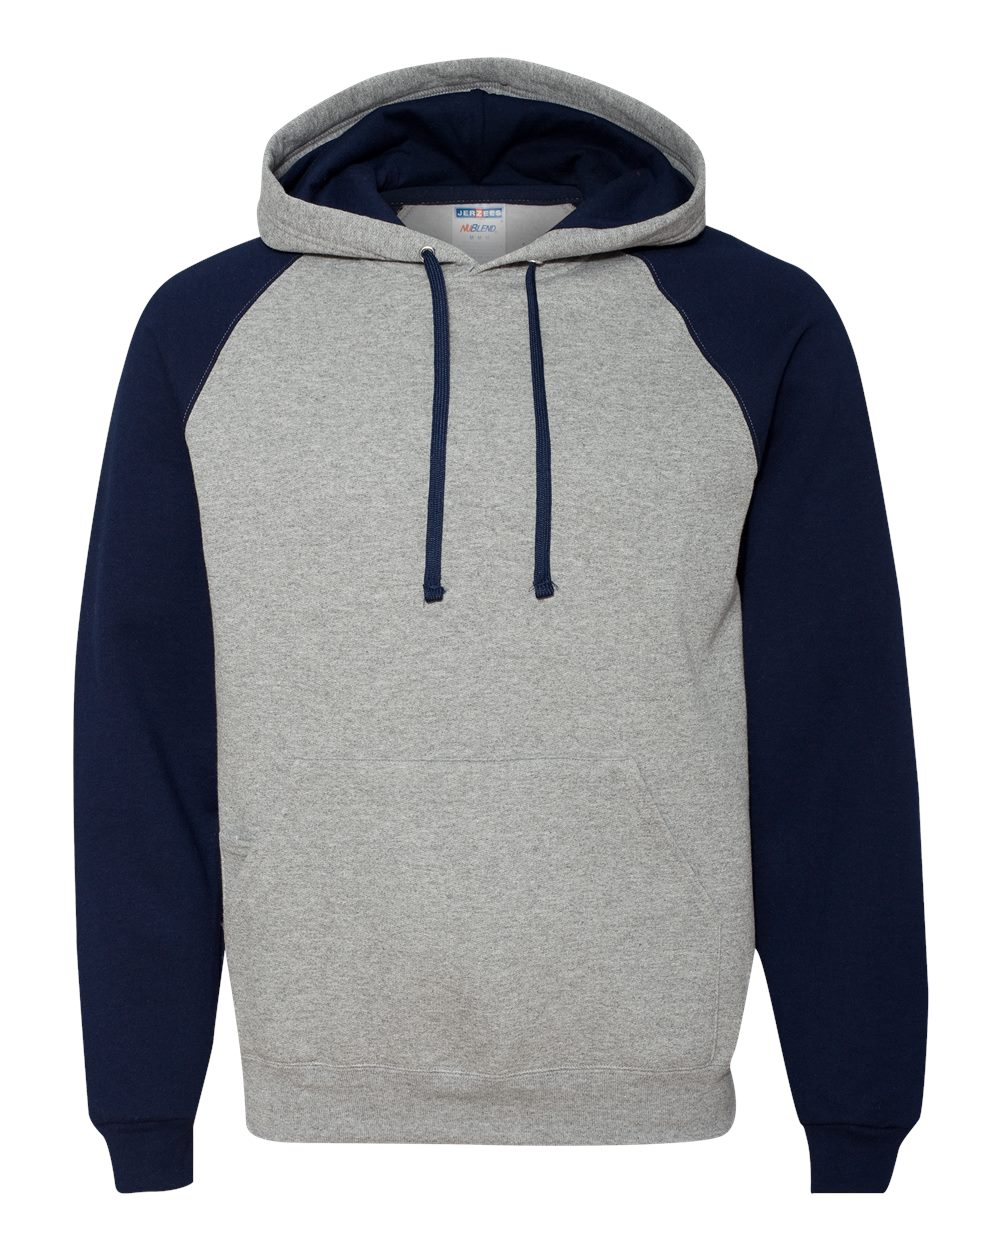 click to view Oxford/J Navy